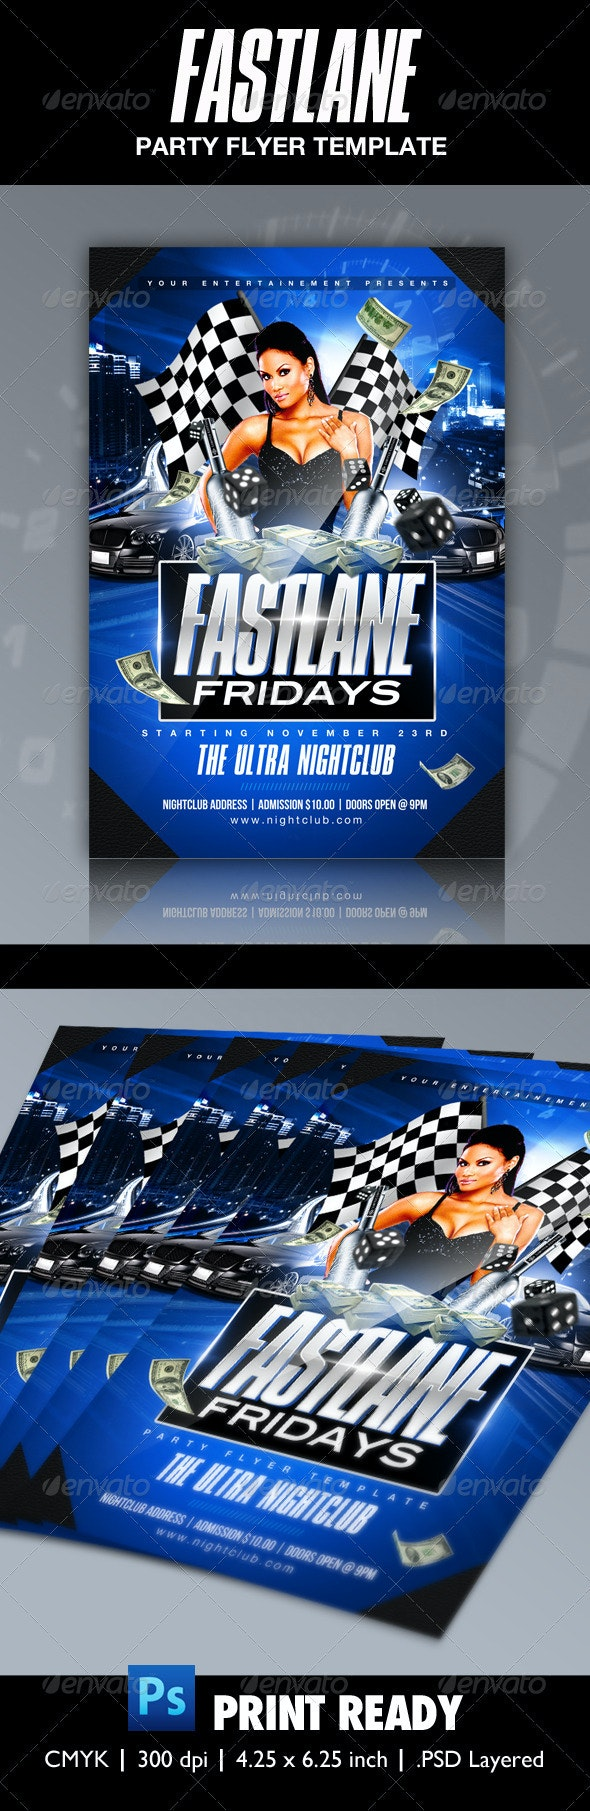 Fast Lane Party Flyer Template - Clubs & Parties Events